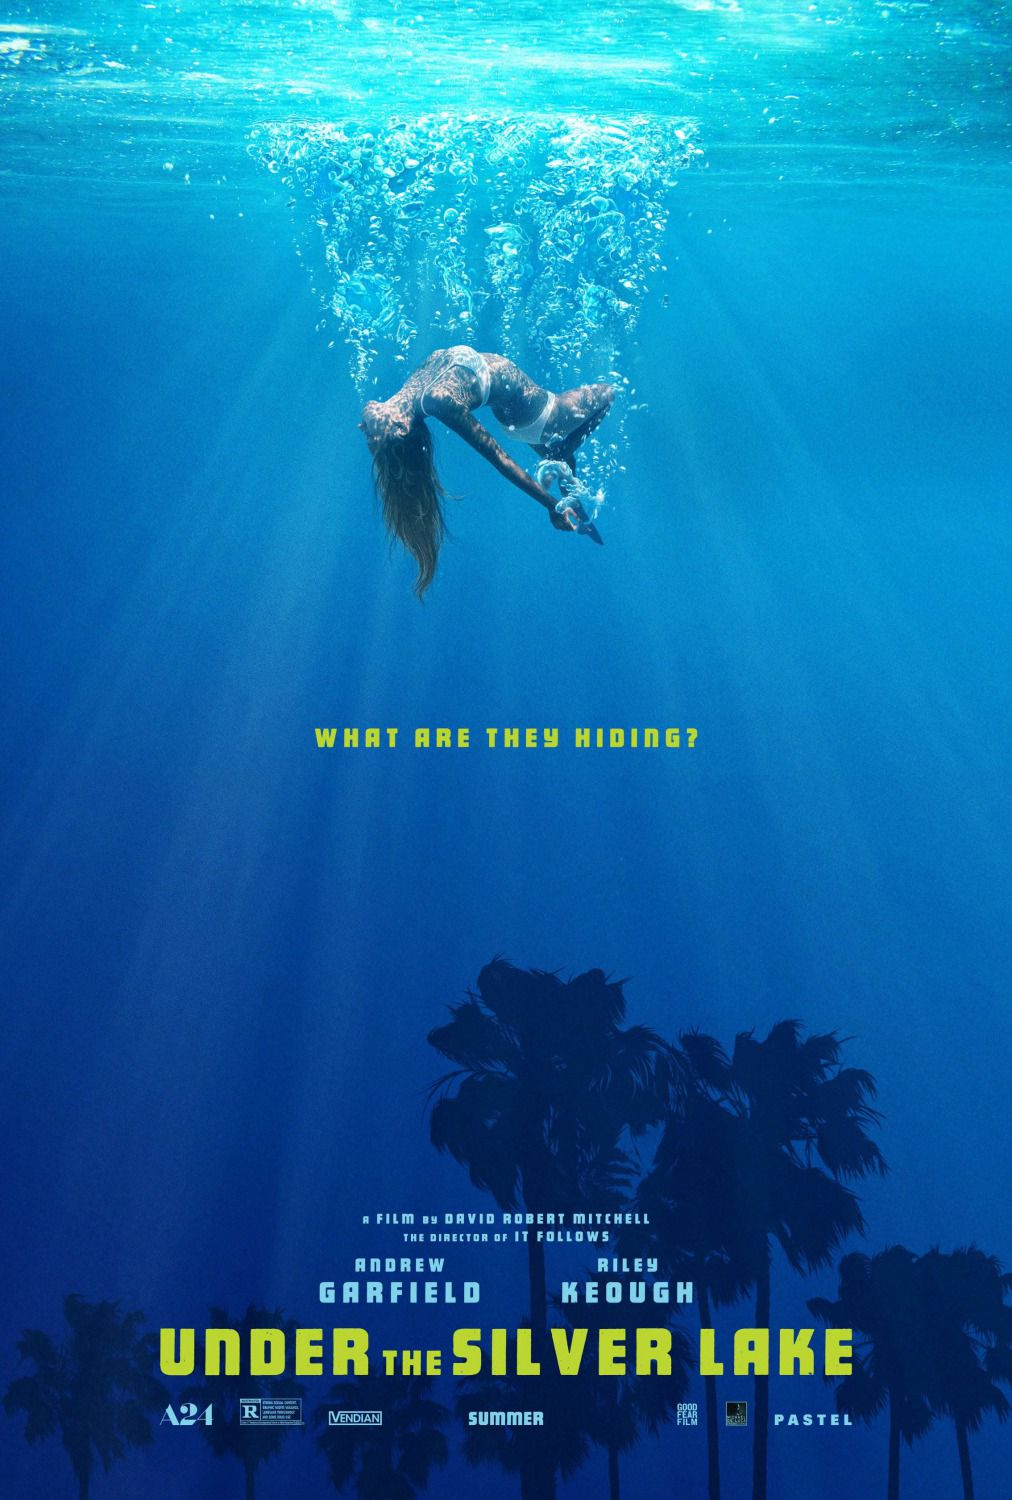 Under the Silver Lake - what are they hiding - Cast: Andrew Garfield, Riley Keough, Topher Grace, Jimmi Simpson - poster 2018